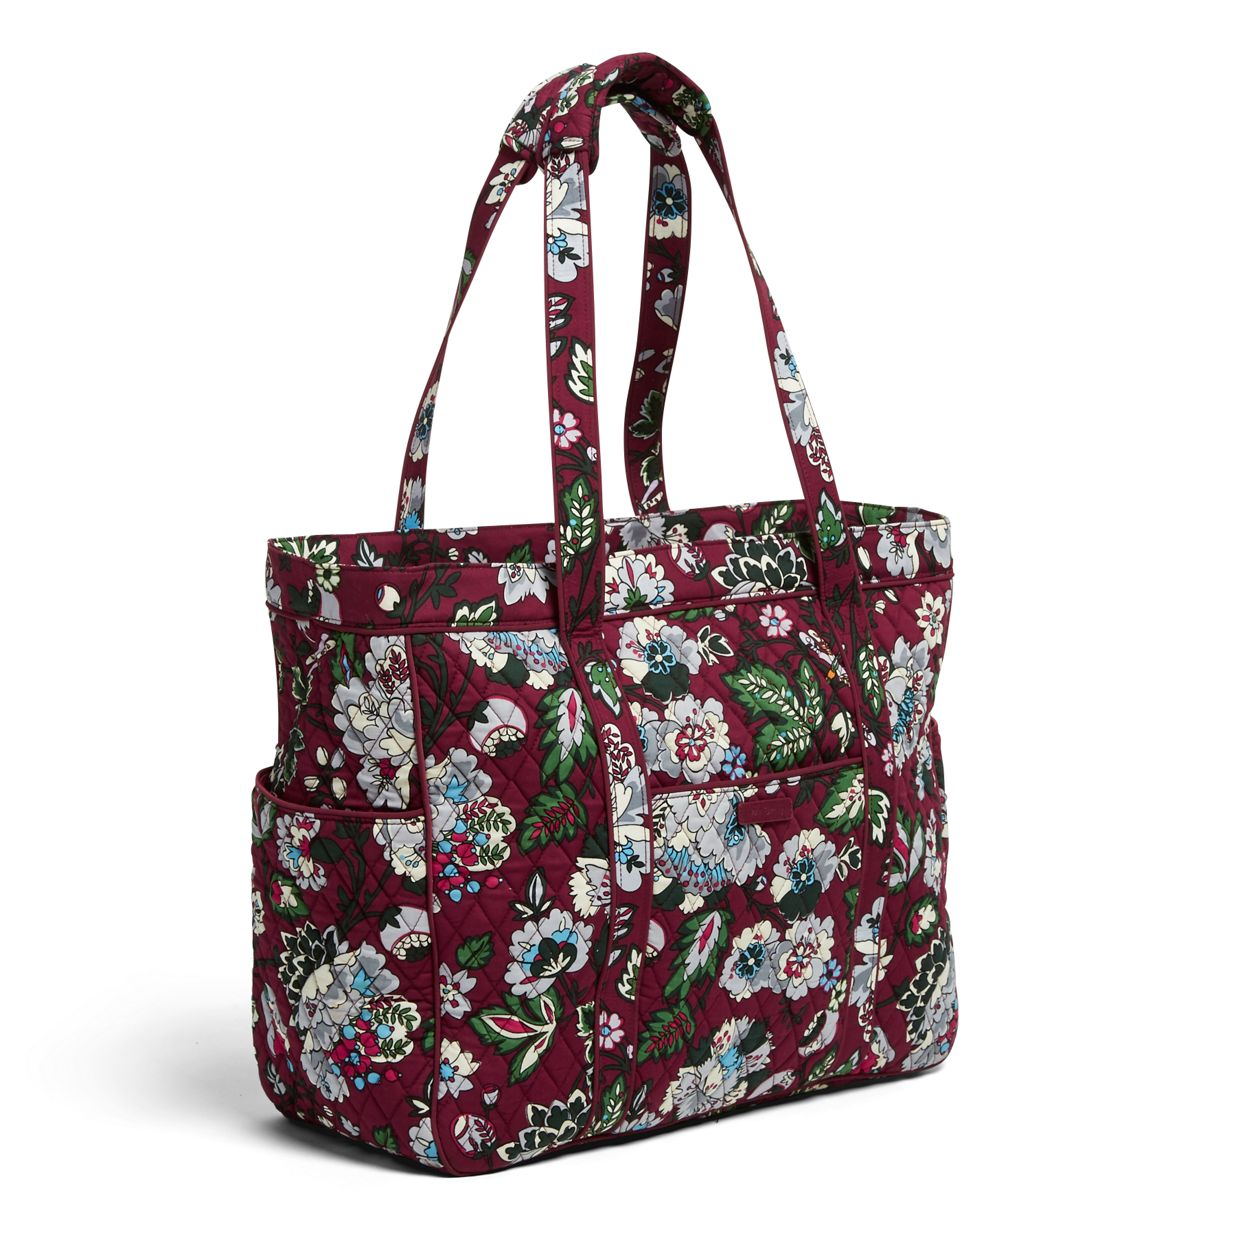 51f1ddc94ec7 ... Image of Get Carried Away Tote in Snow Lotus ...